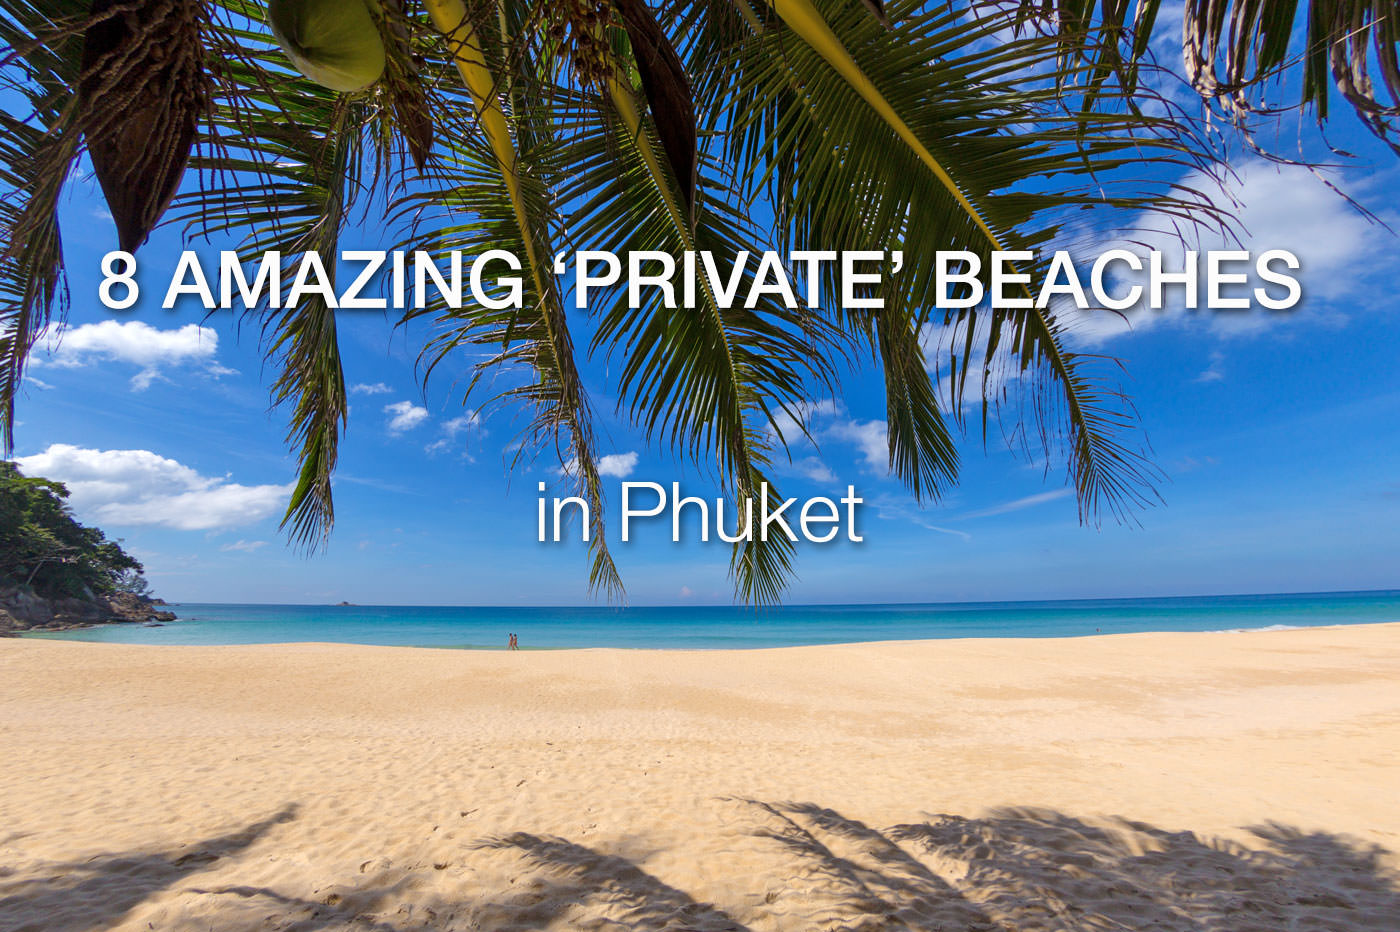 Private Beaches in Phuket